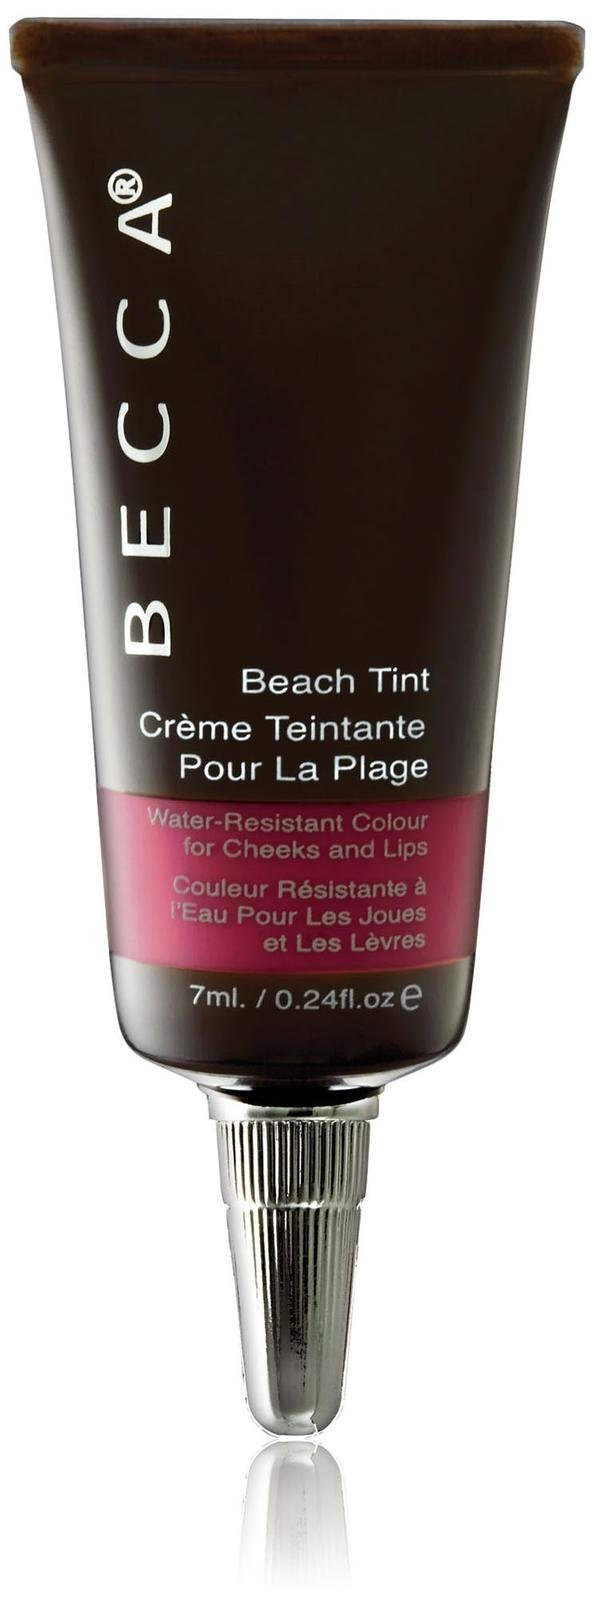 Becca Becca beach tint water resistant colour for cheeks and lips - #raspberry, 0.24oz, 0.24 Ounce by Becca (Image #1)